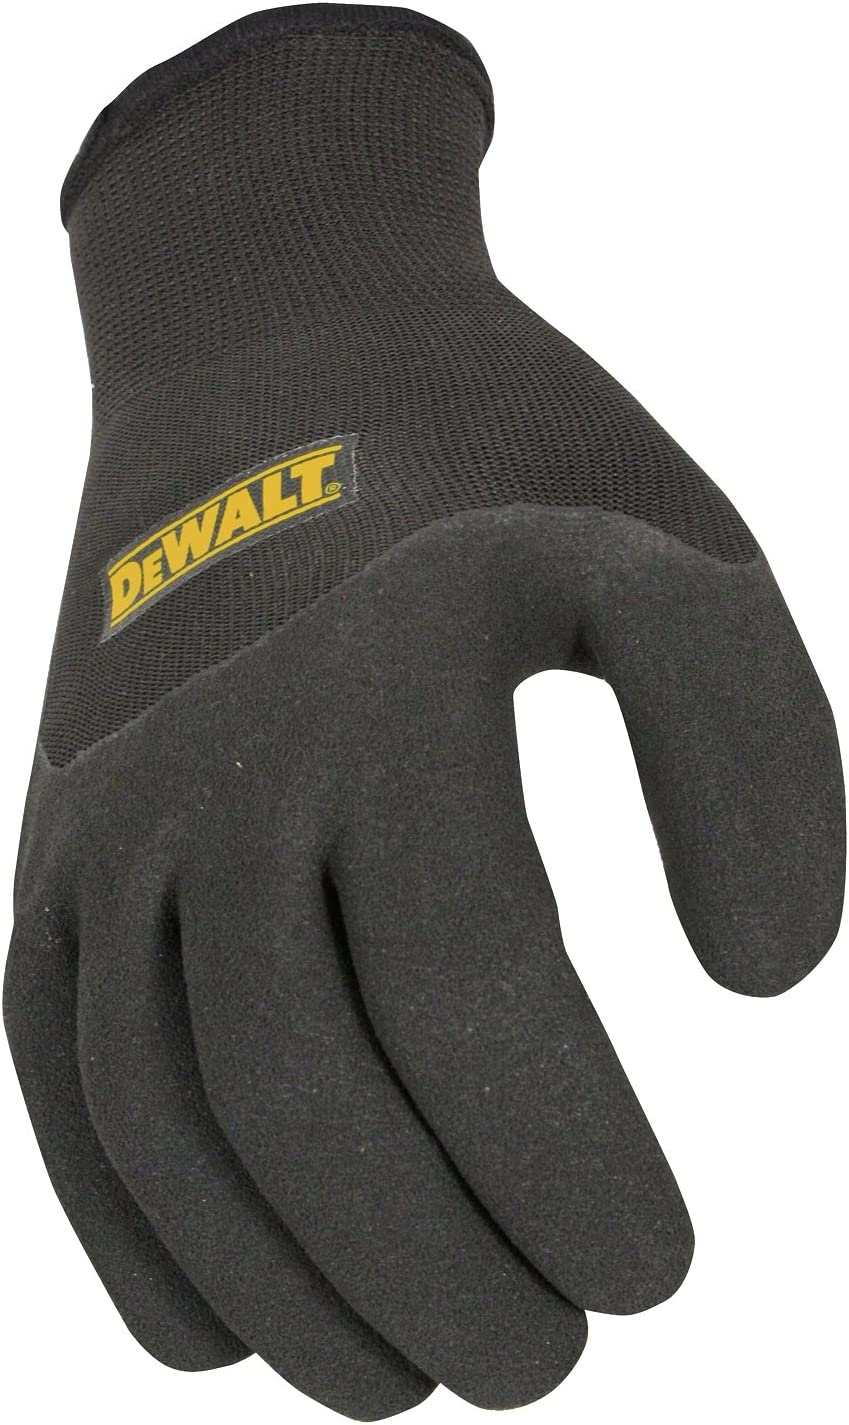 Dewalt Special price for a limited time DPG737L Thermal Insulated Grip Glove Max 54% OFF Large 2 1 Design In